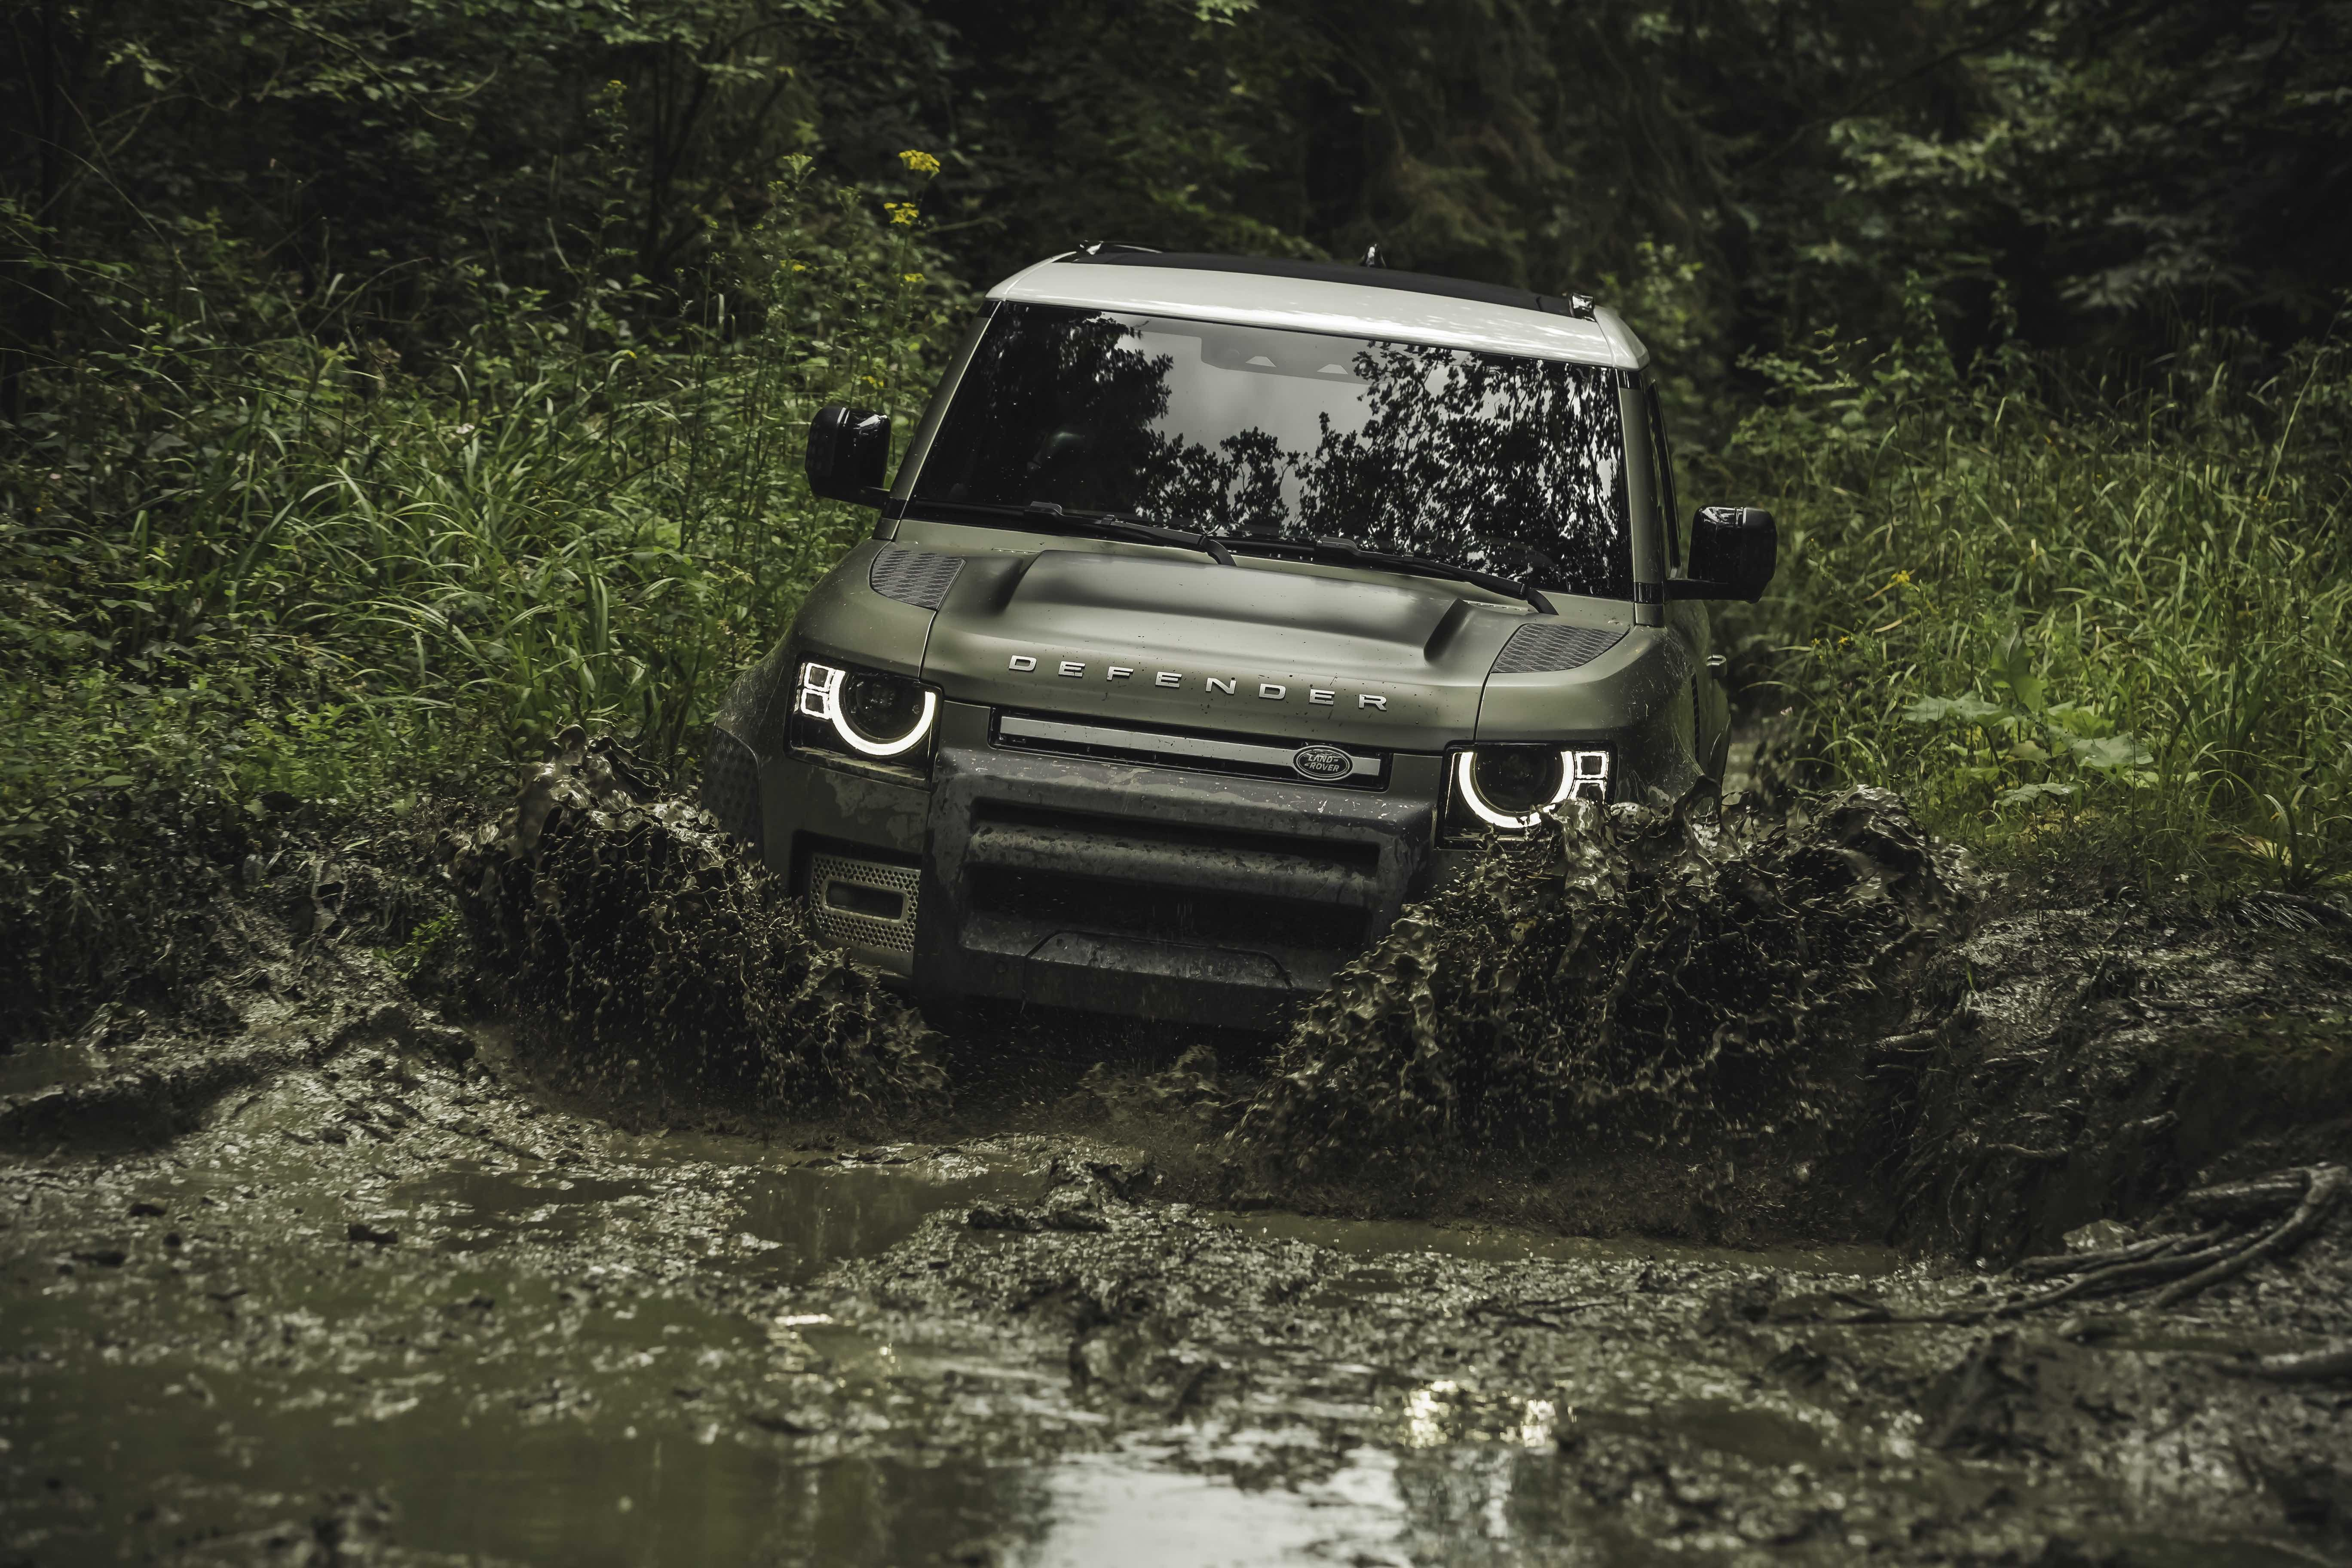 Comments on: 2020 Land Rover Defender Is Back, and Better